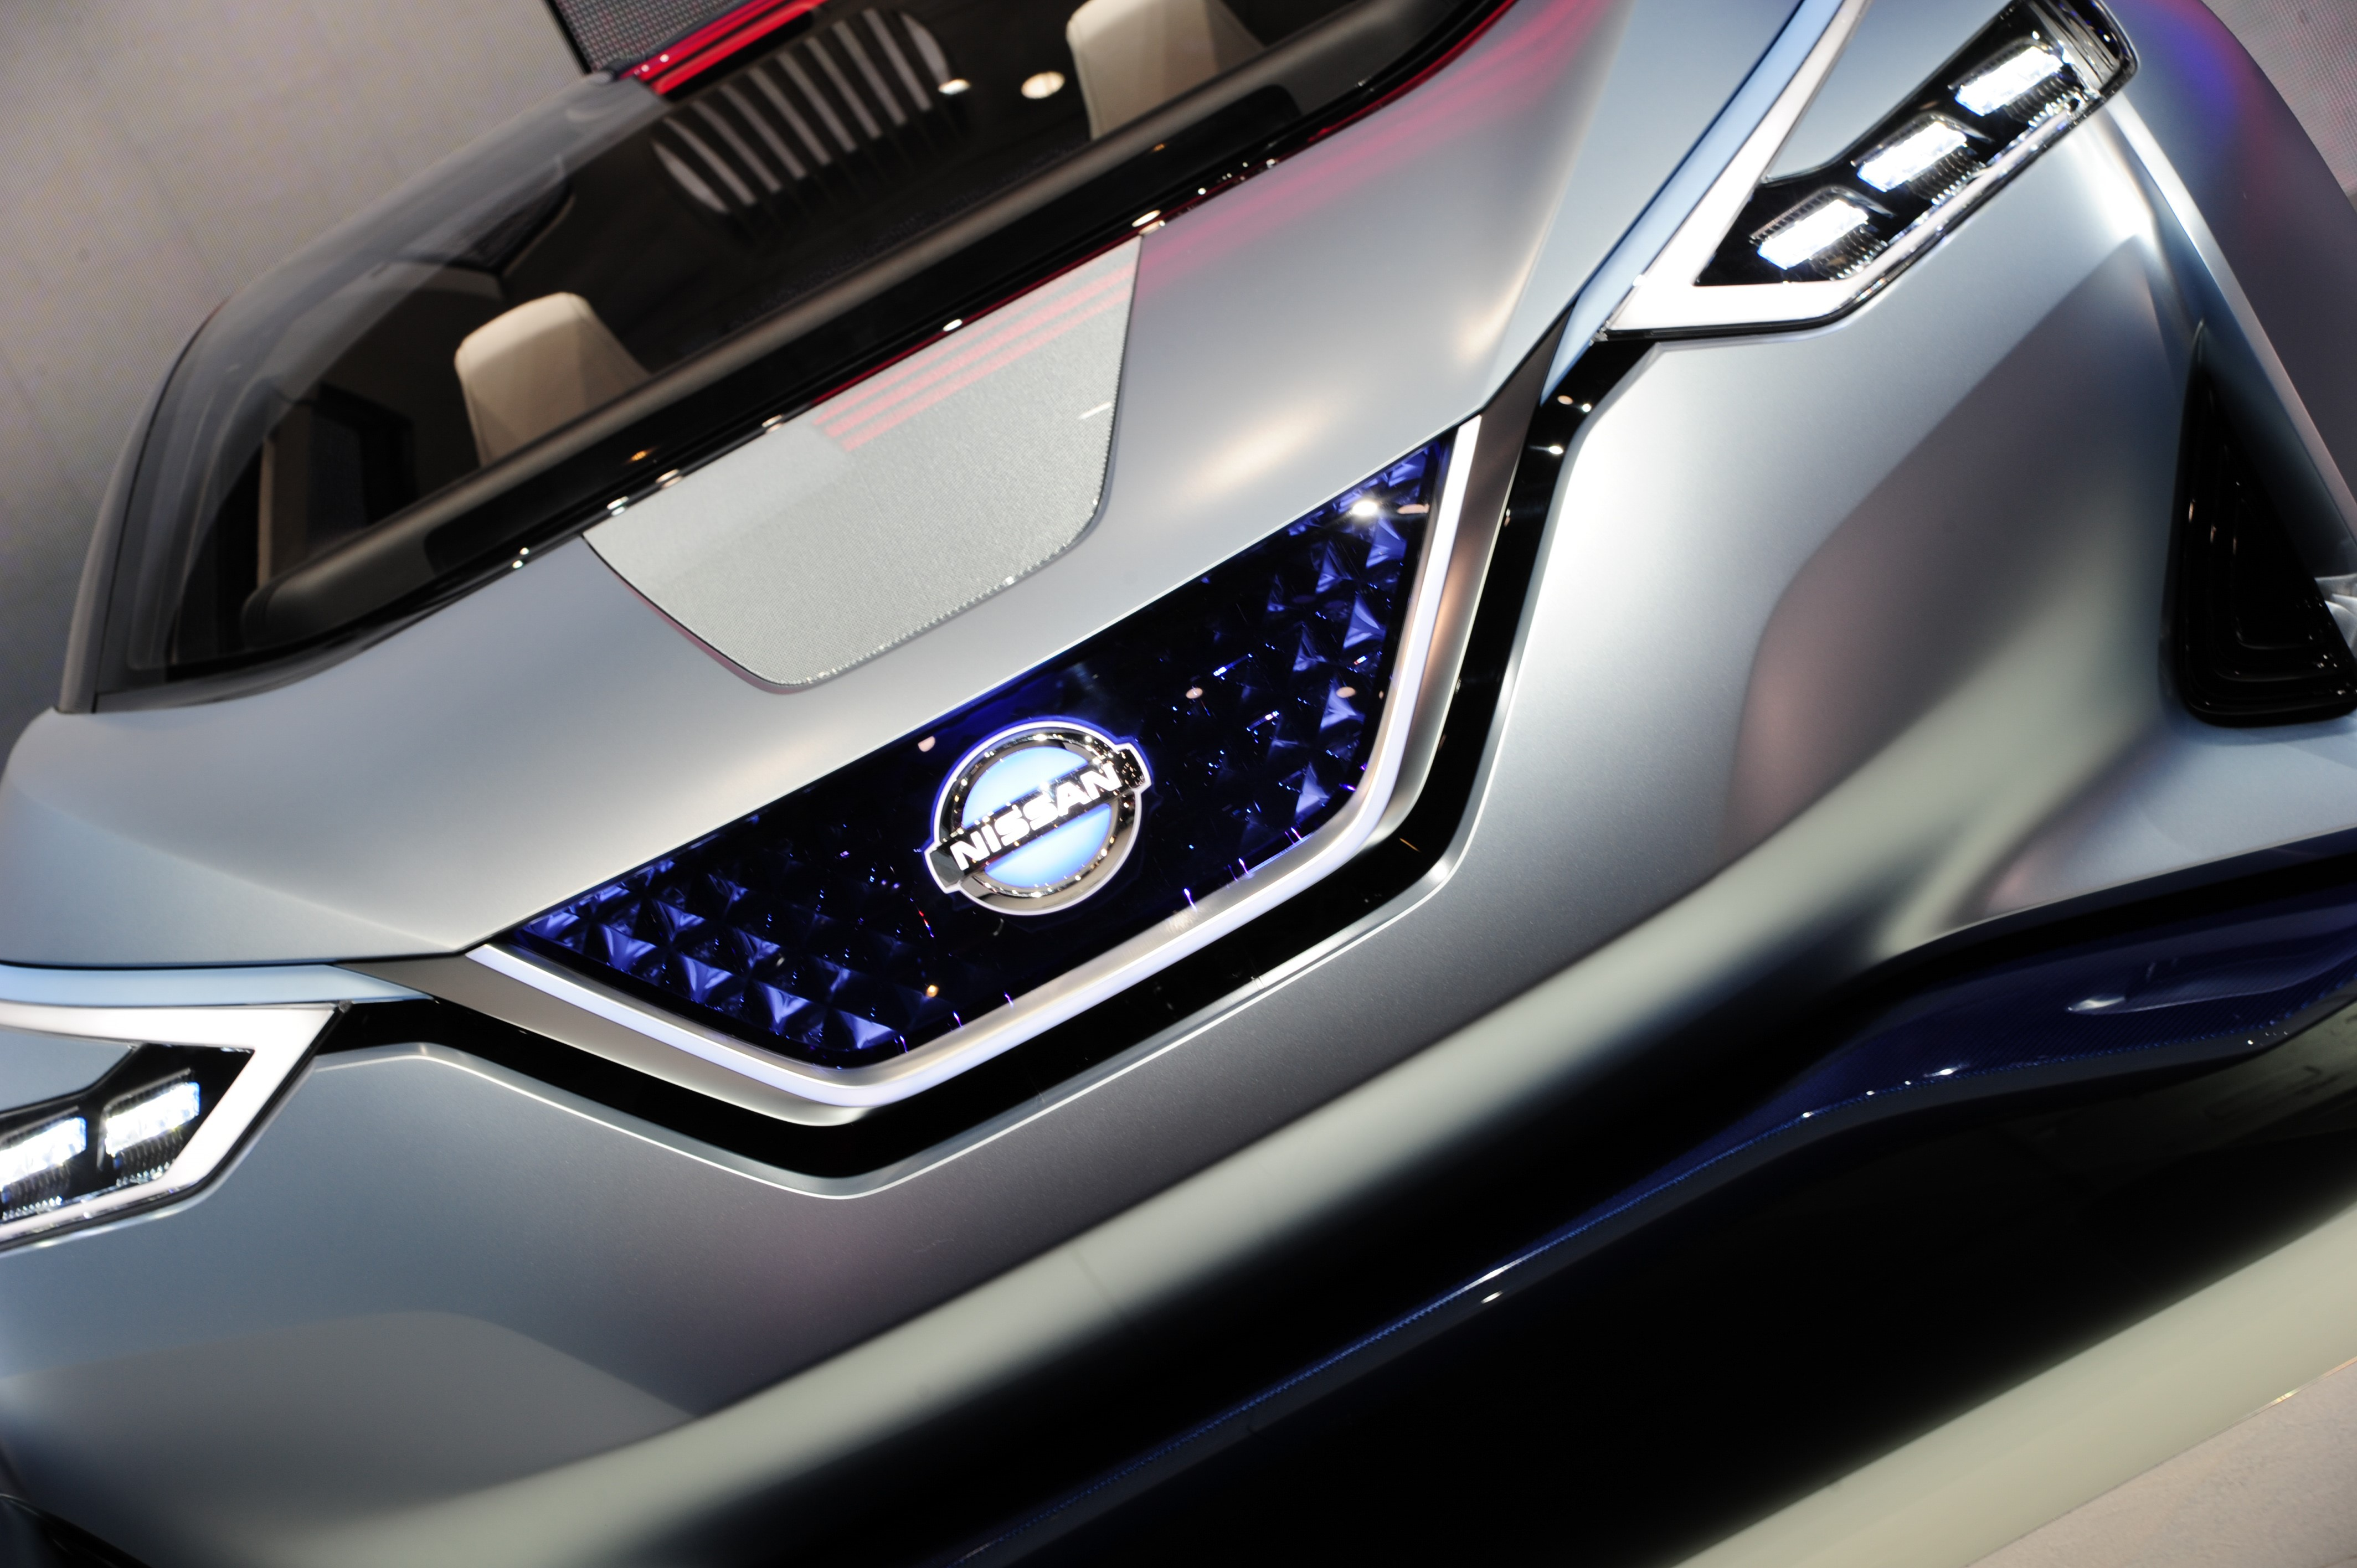 Nissan's 2017 Qashqai to be equipped to drive autonomously